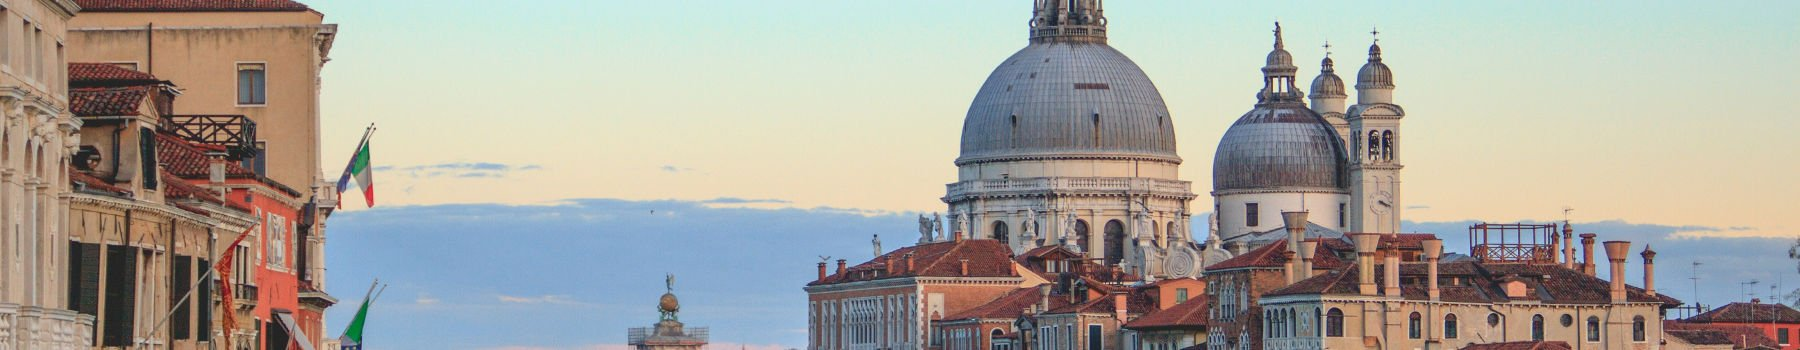 An excursion to discover the Republic of Venice from Rimini by bus